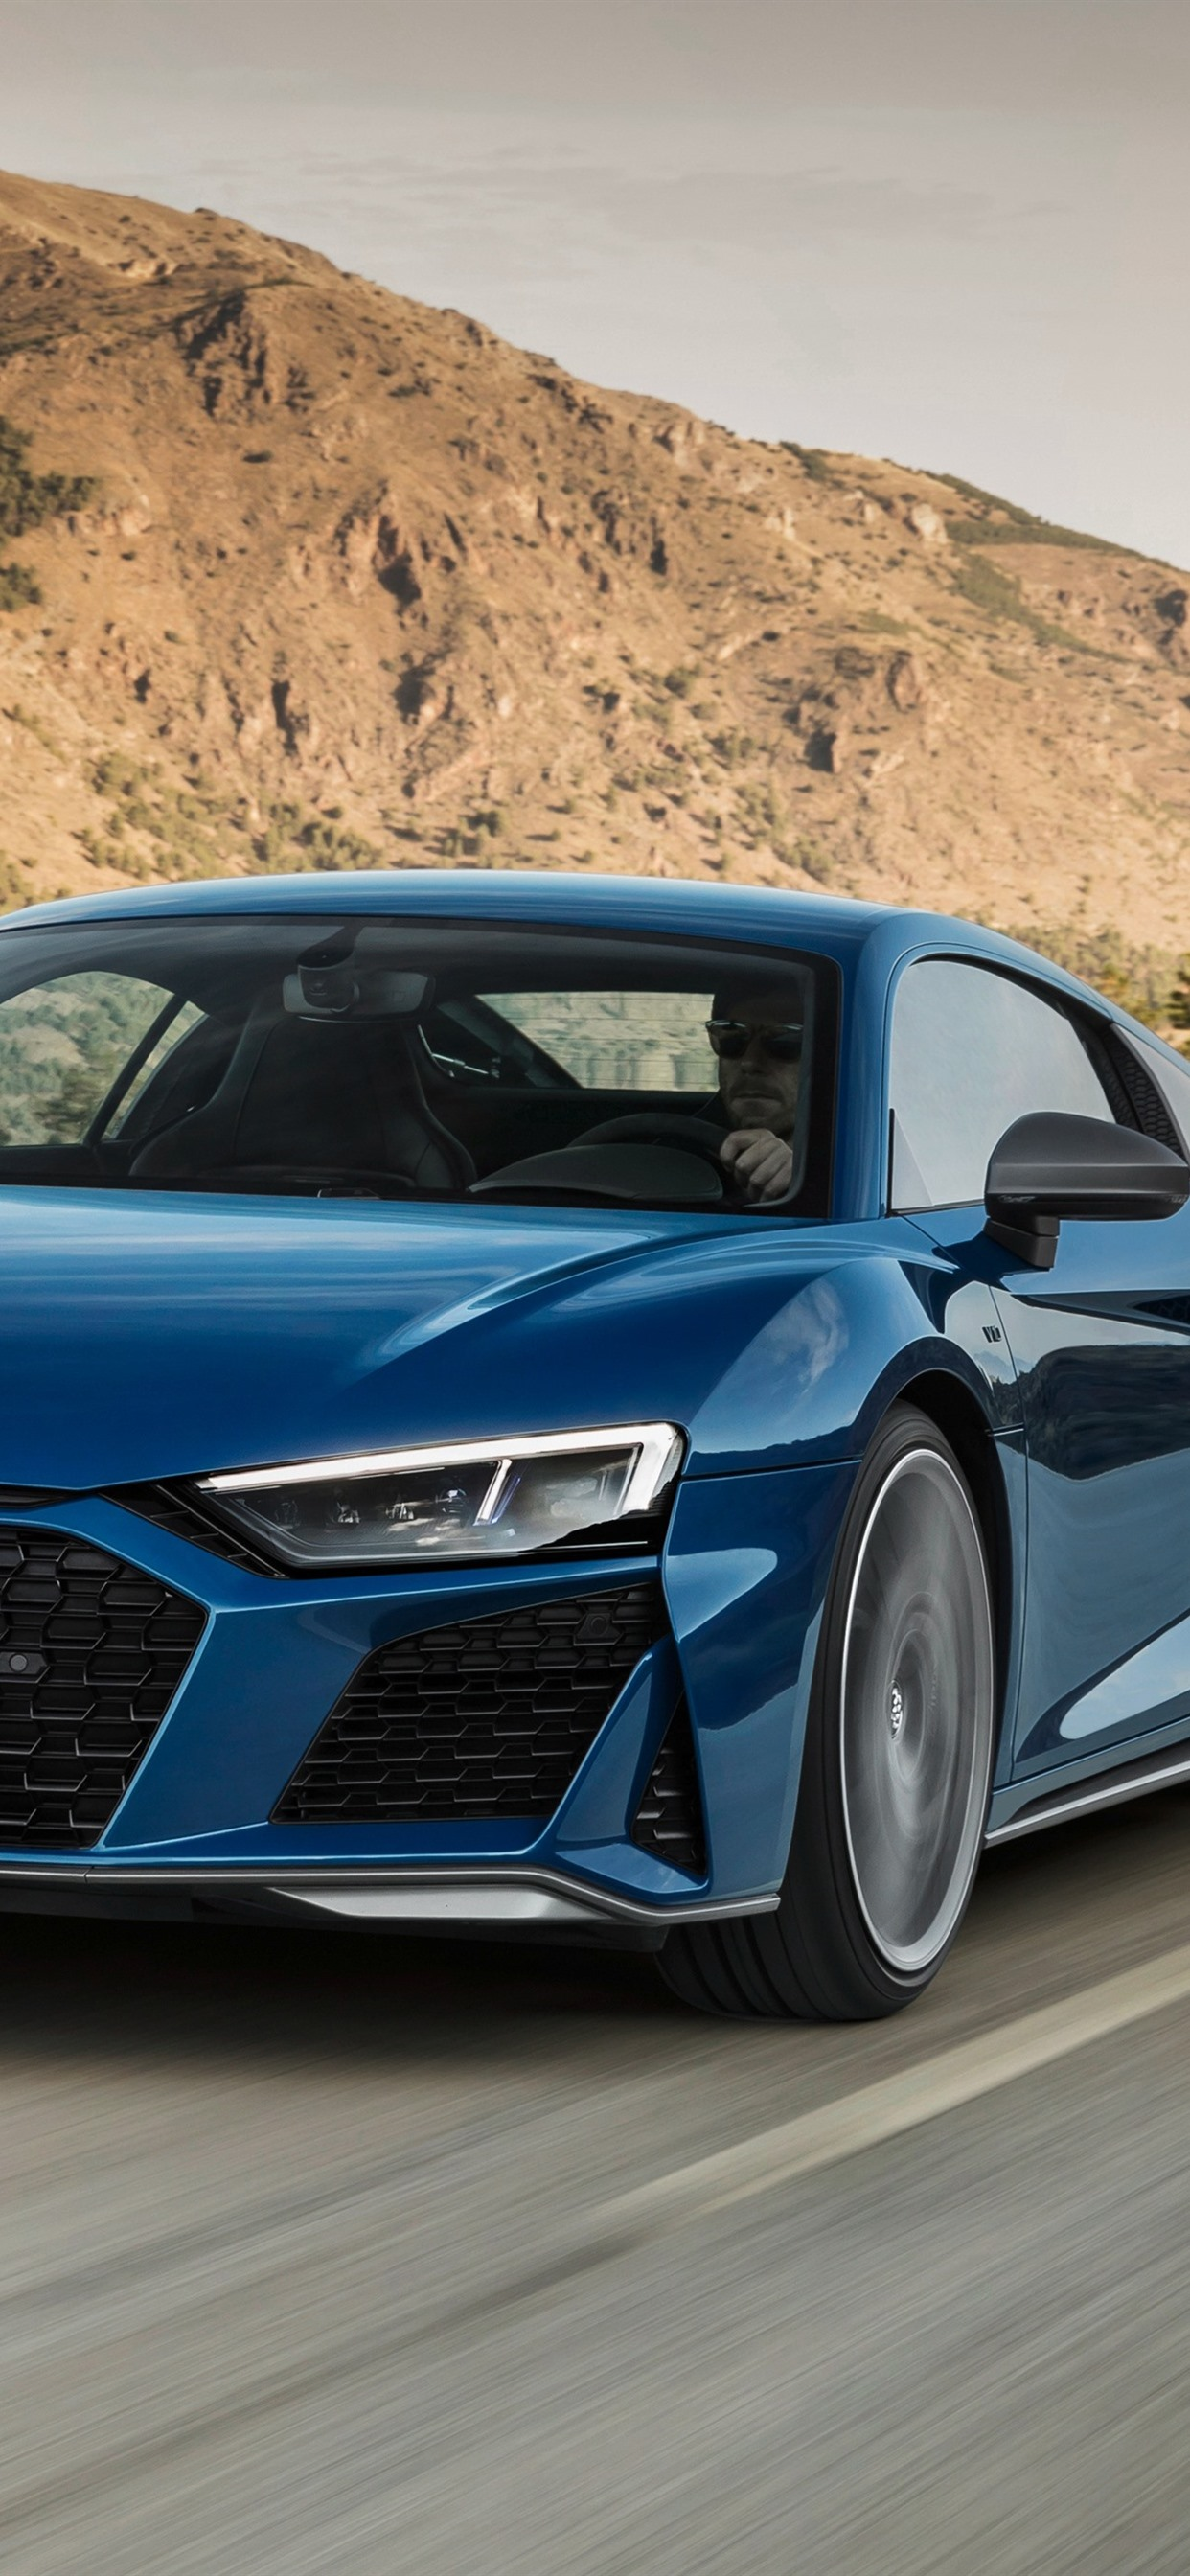 Audi R8 2019 blue car speed 1242x2688 iPhone XS Max wallpapers